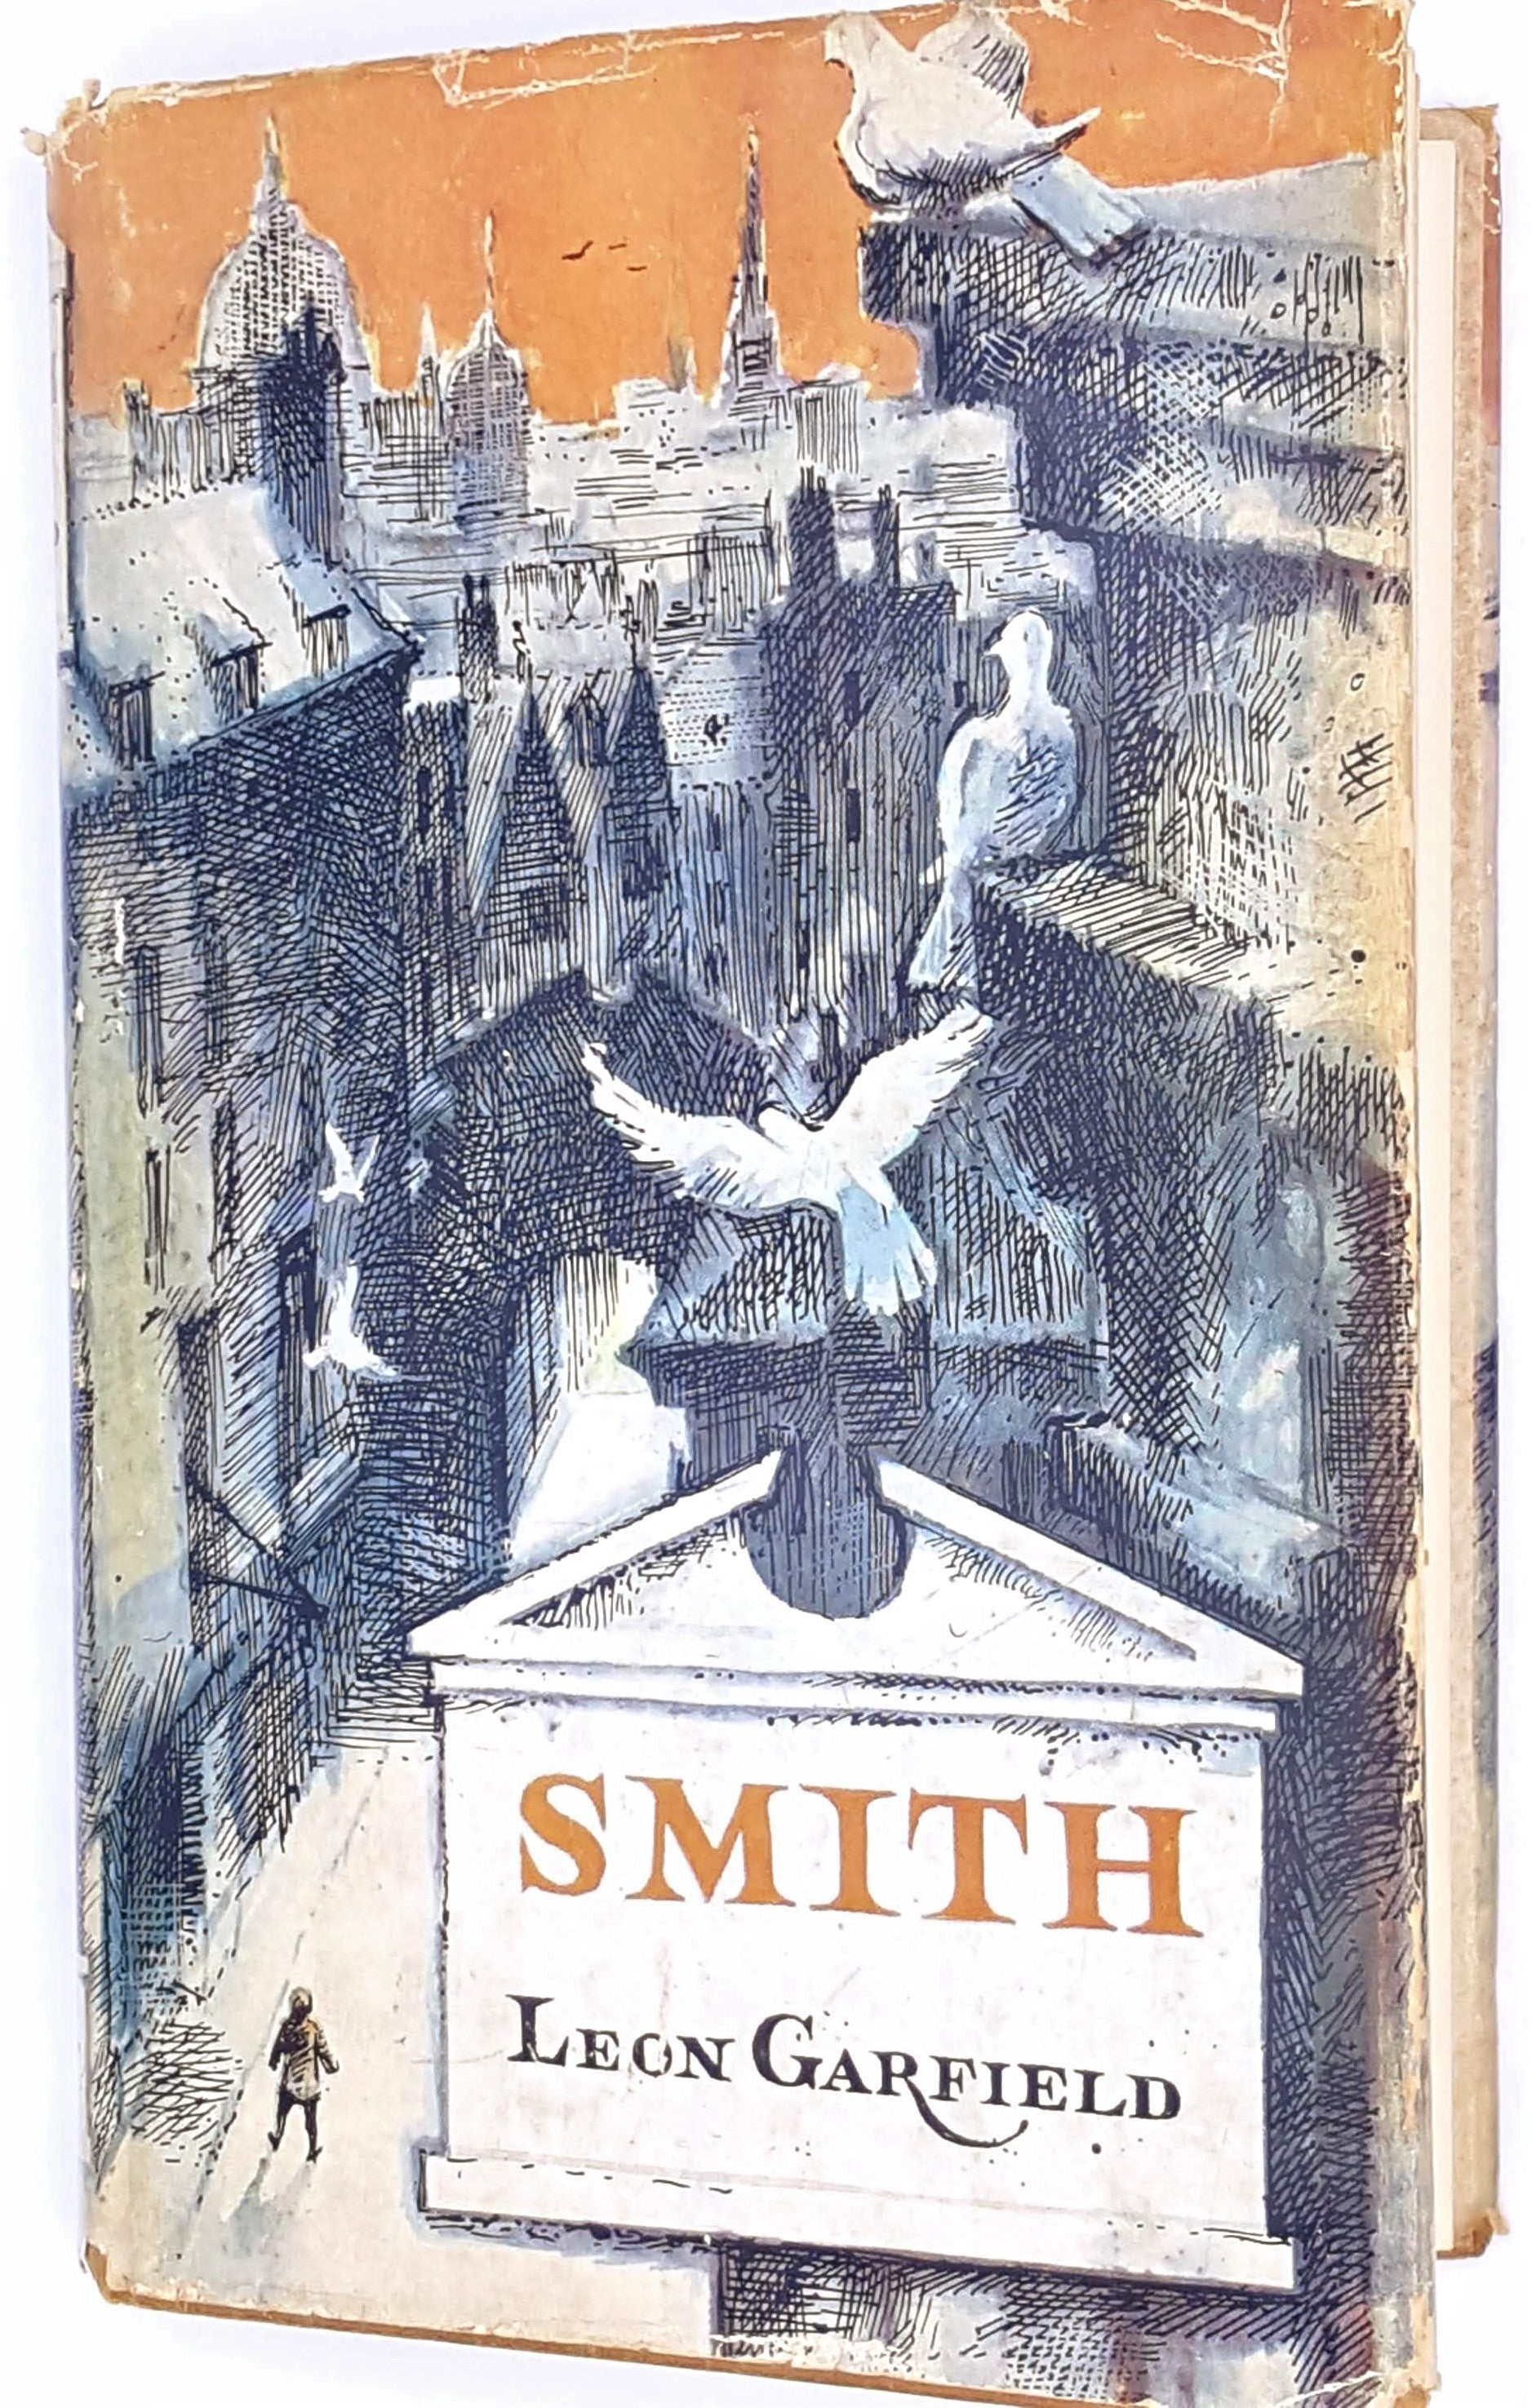 Smith by Leon Garfield 1970